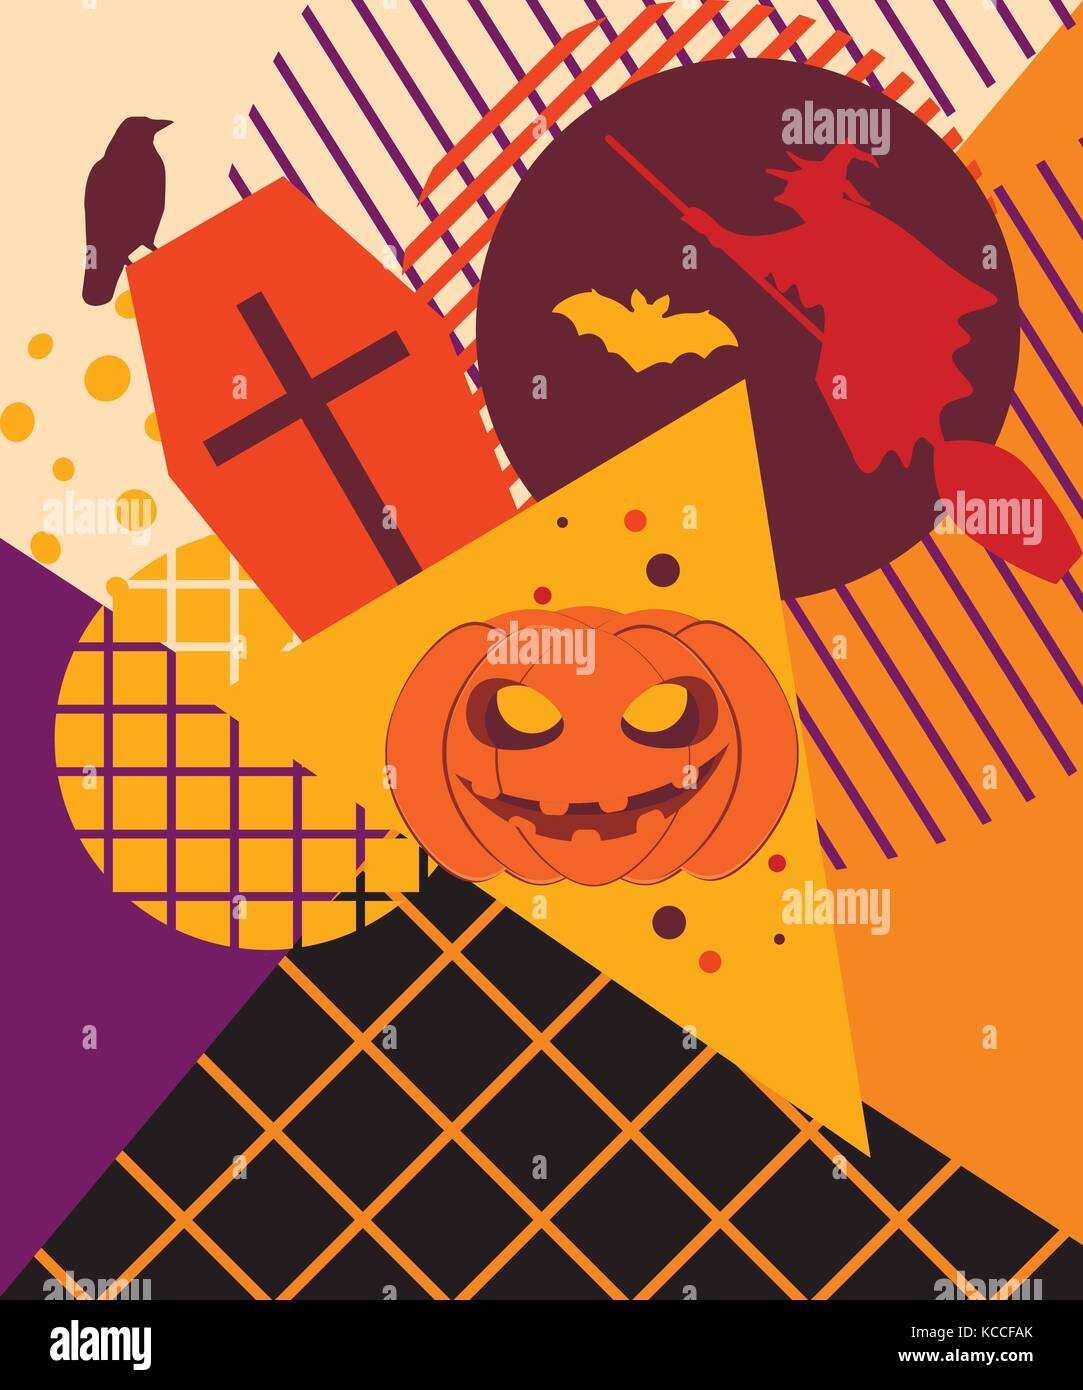 halloween memphis college festive background with mystical creatures and geometric figures in the style of the 80s vector illustration